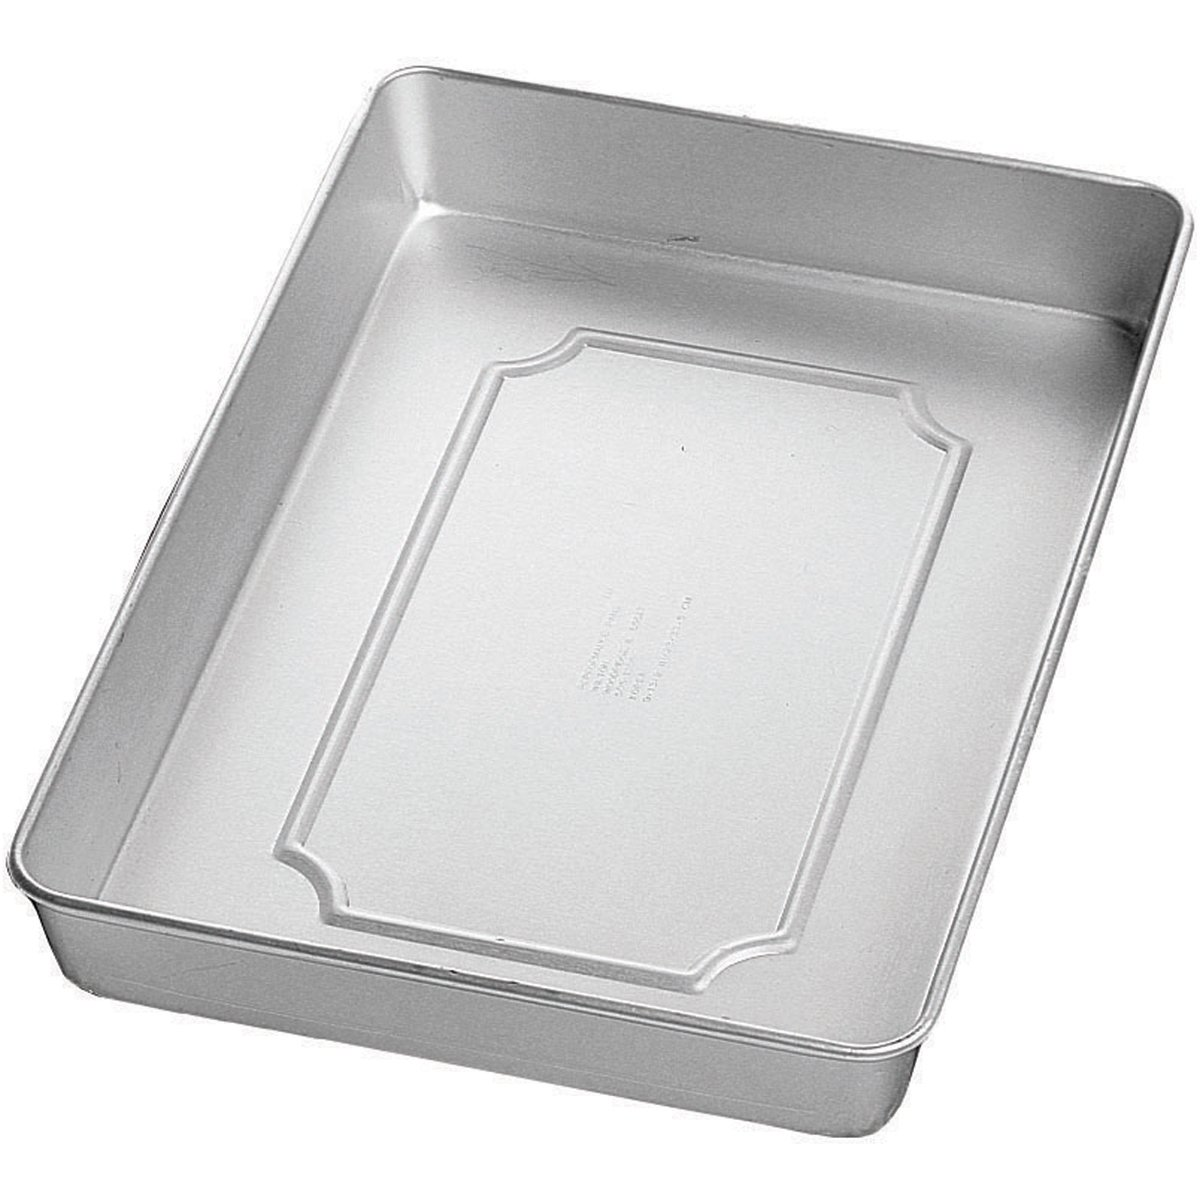 Wilton Performance Pans Aluminum Square Cake and Brownie Pan 12-Inch 2105-8213